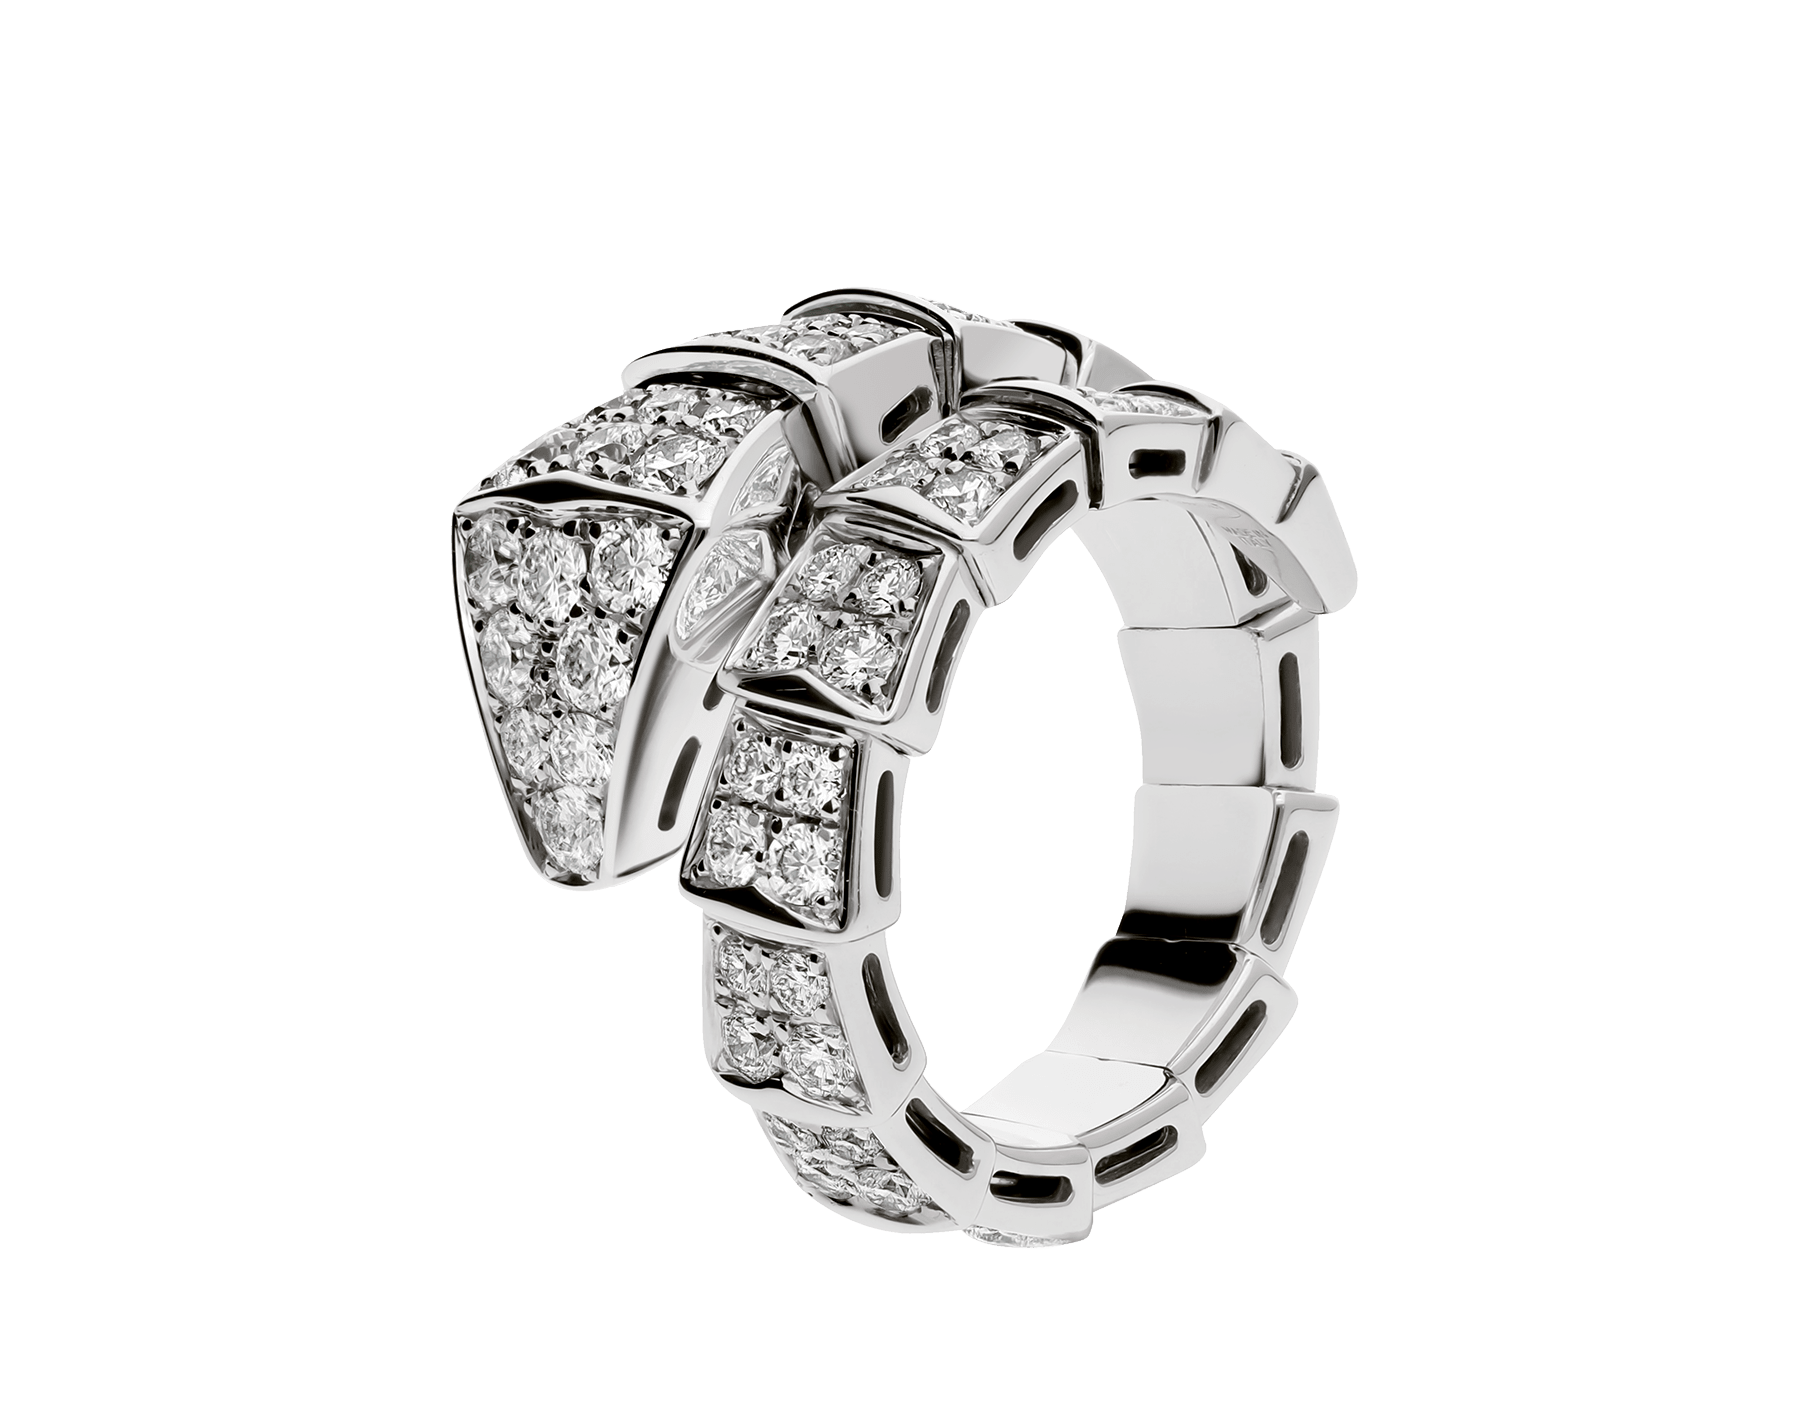 Serpenti one-coil ring in 18 kt white gold, set with full pavé diamonds. AN855116 image 2